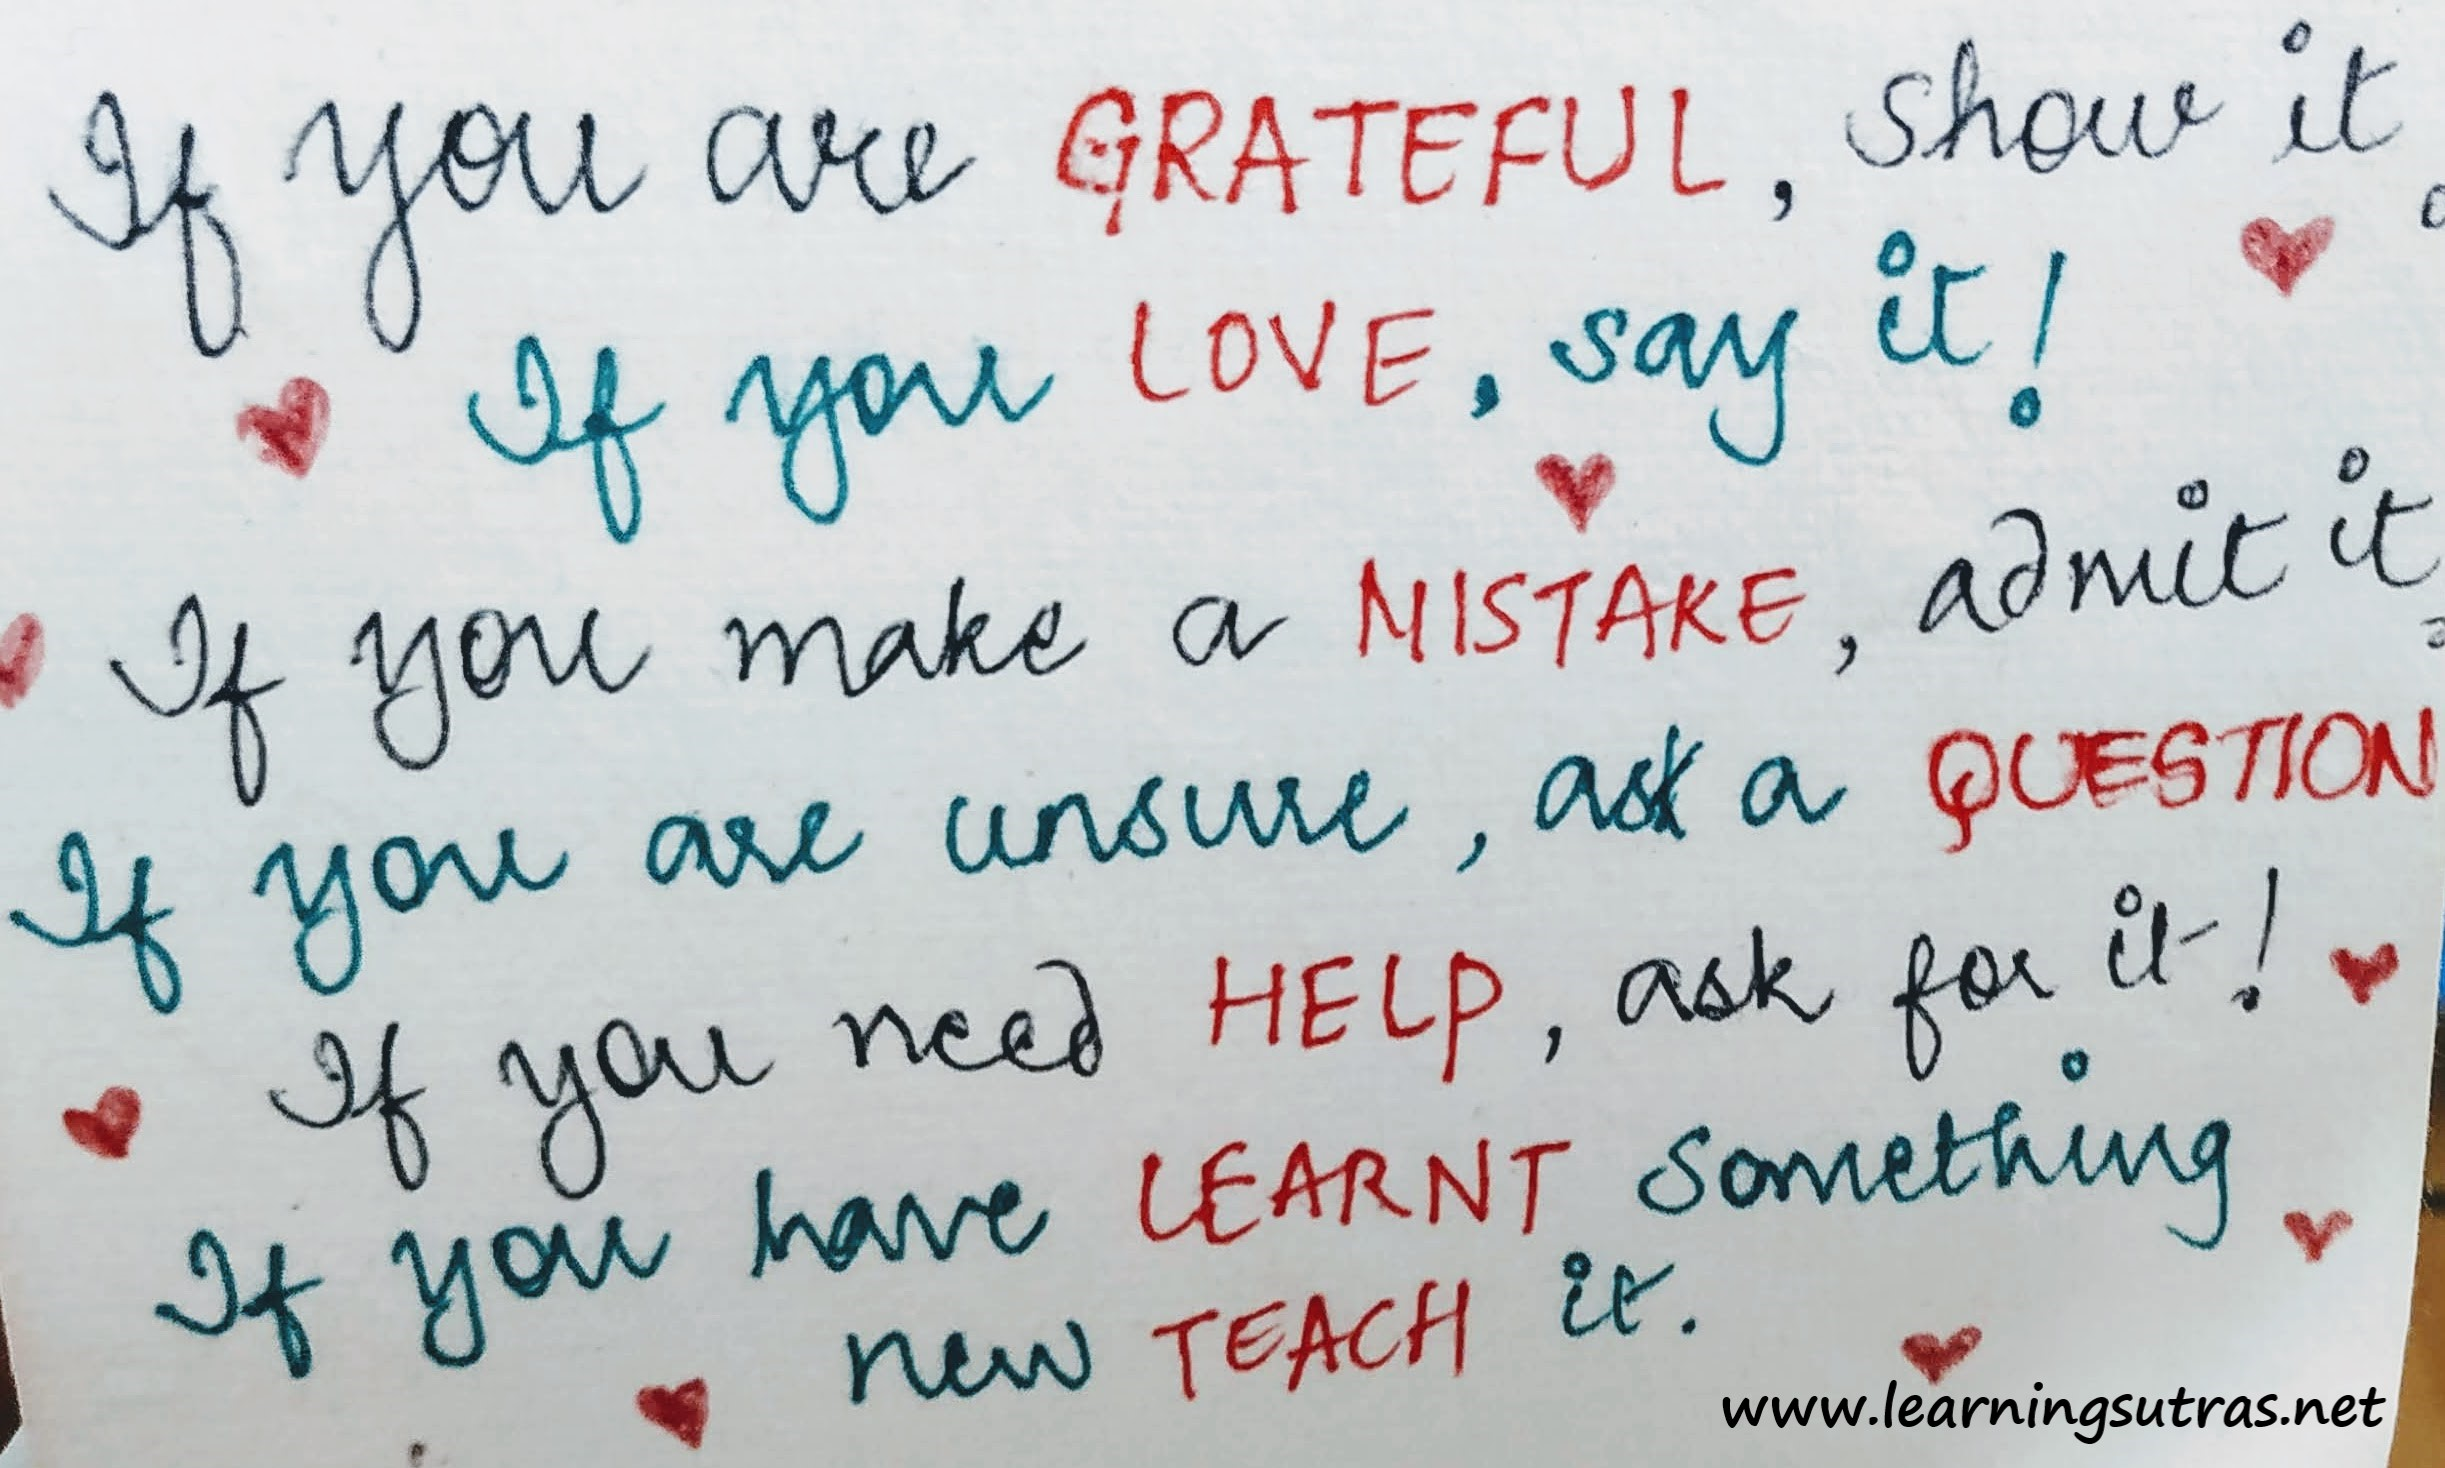 Daily Inspiration Quotes - Learning Sutr